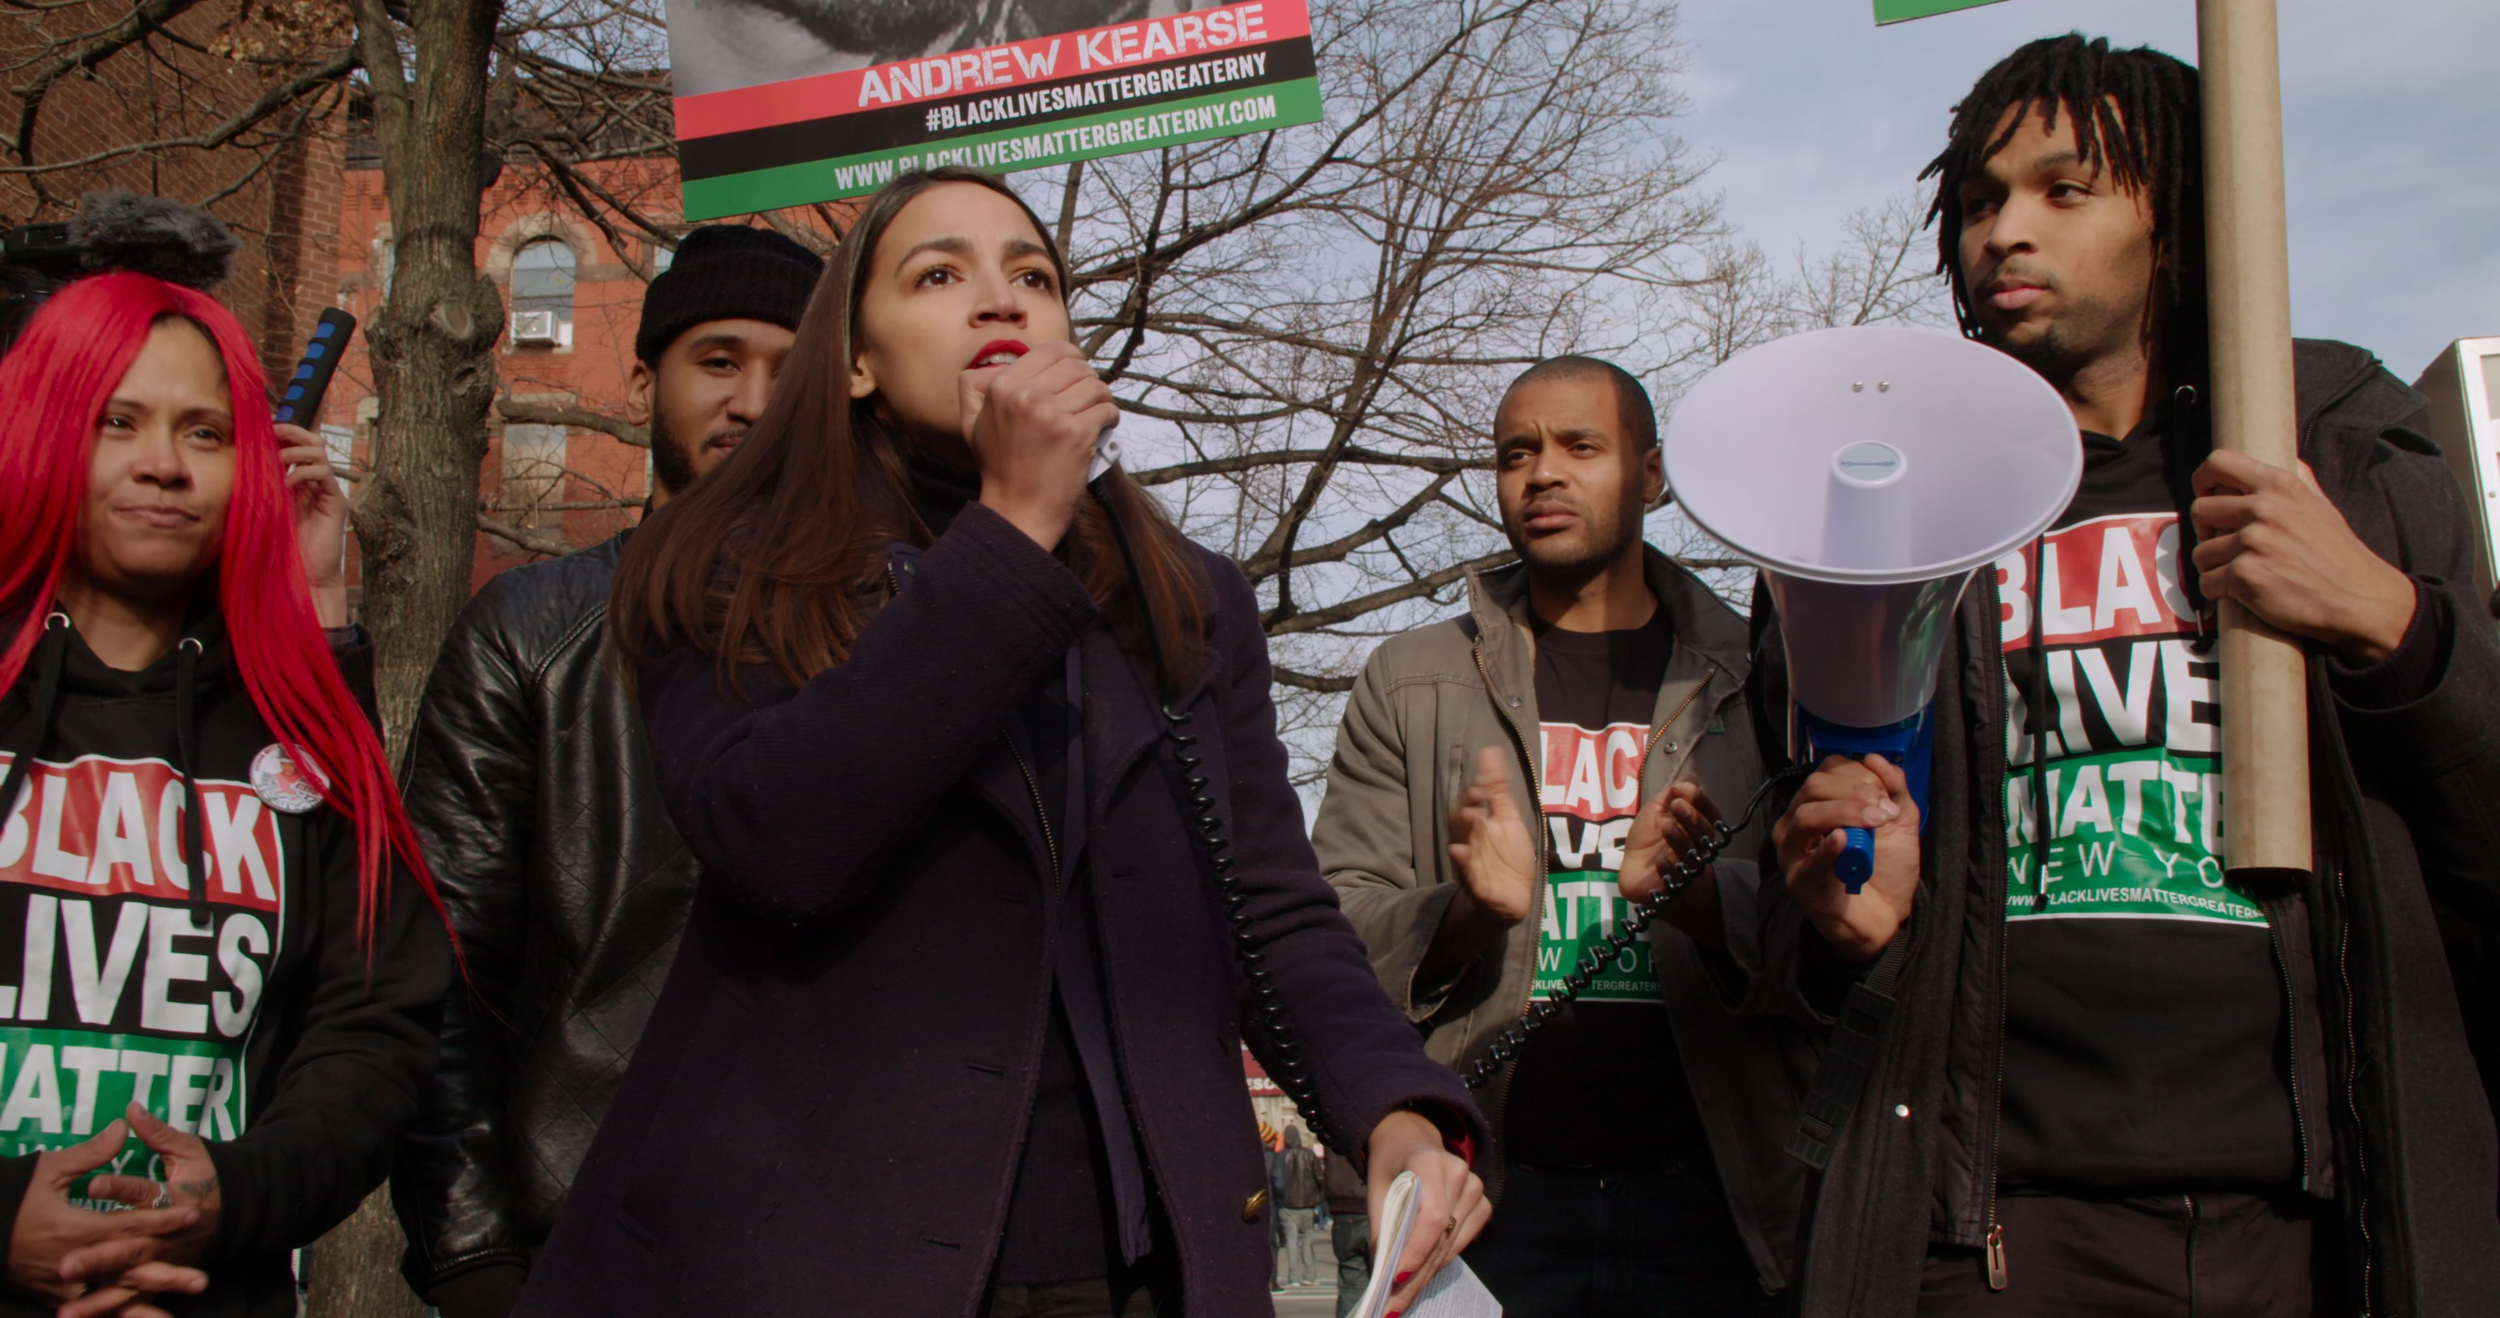 """""""I'm running because of Cori Bush. I'm running because of Paula Jean Swearengin. I'm running because everyday Americans deserve to be represented by everyday Americans.""""  - Alexandria Ocasio-Cortez"""